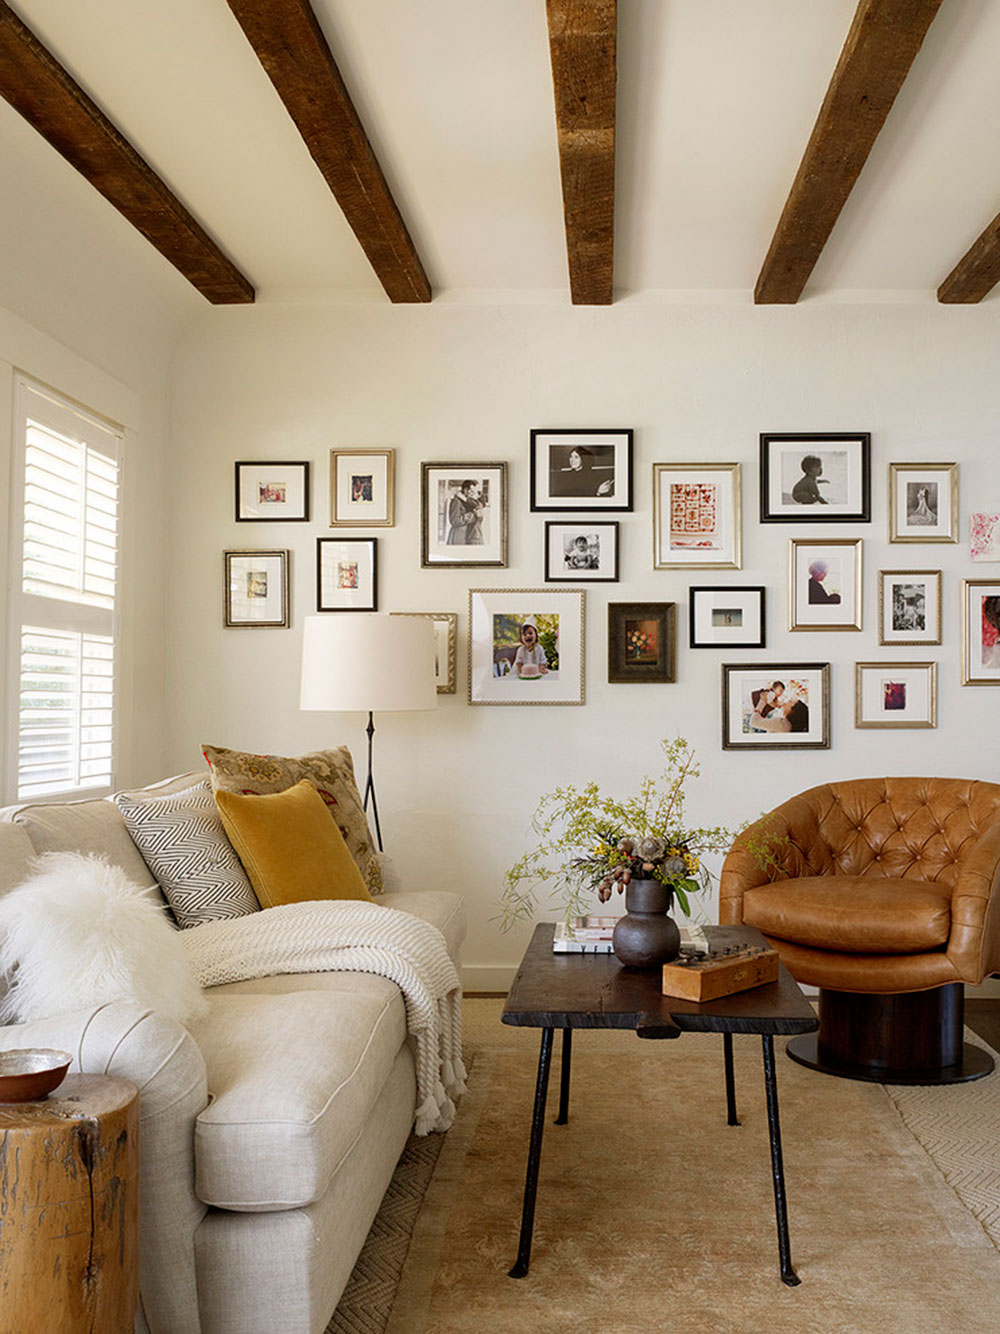 15 Rustic Home Decor Ideas for Your Living Room on Decor For Room  id=20291